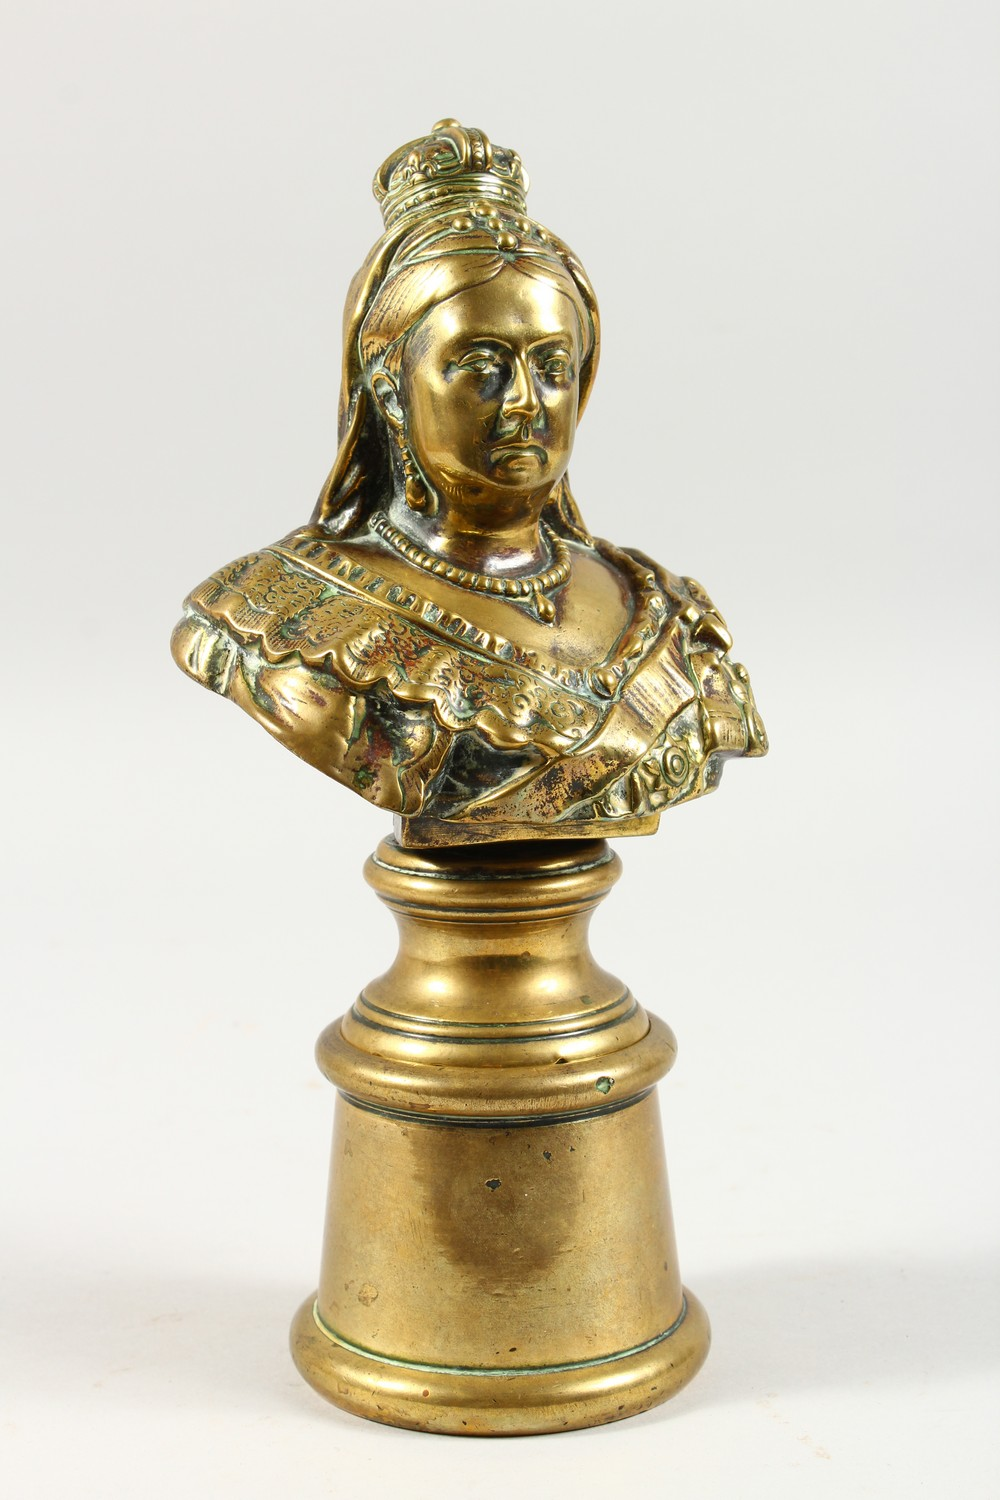 Lot 1427 - A BRONZE BUST OF QUEEN VICTORIA, to commemorate her Diamond Jubilee, on a pedestal. 10.5ins high.